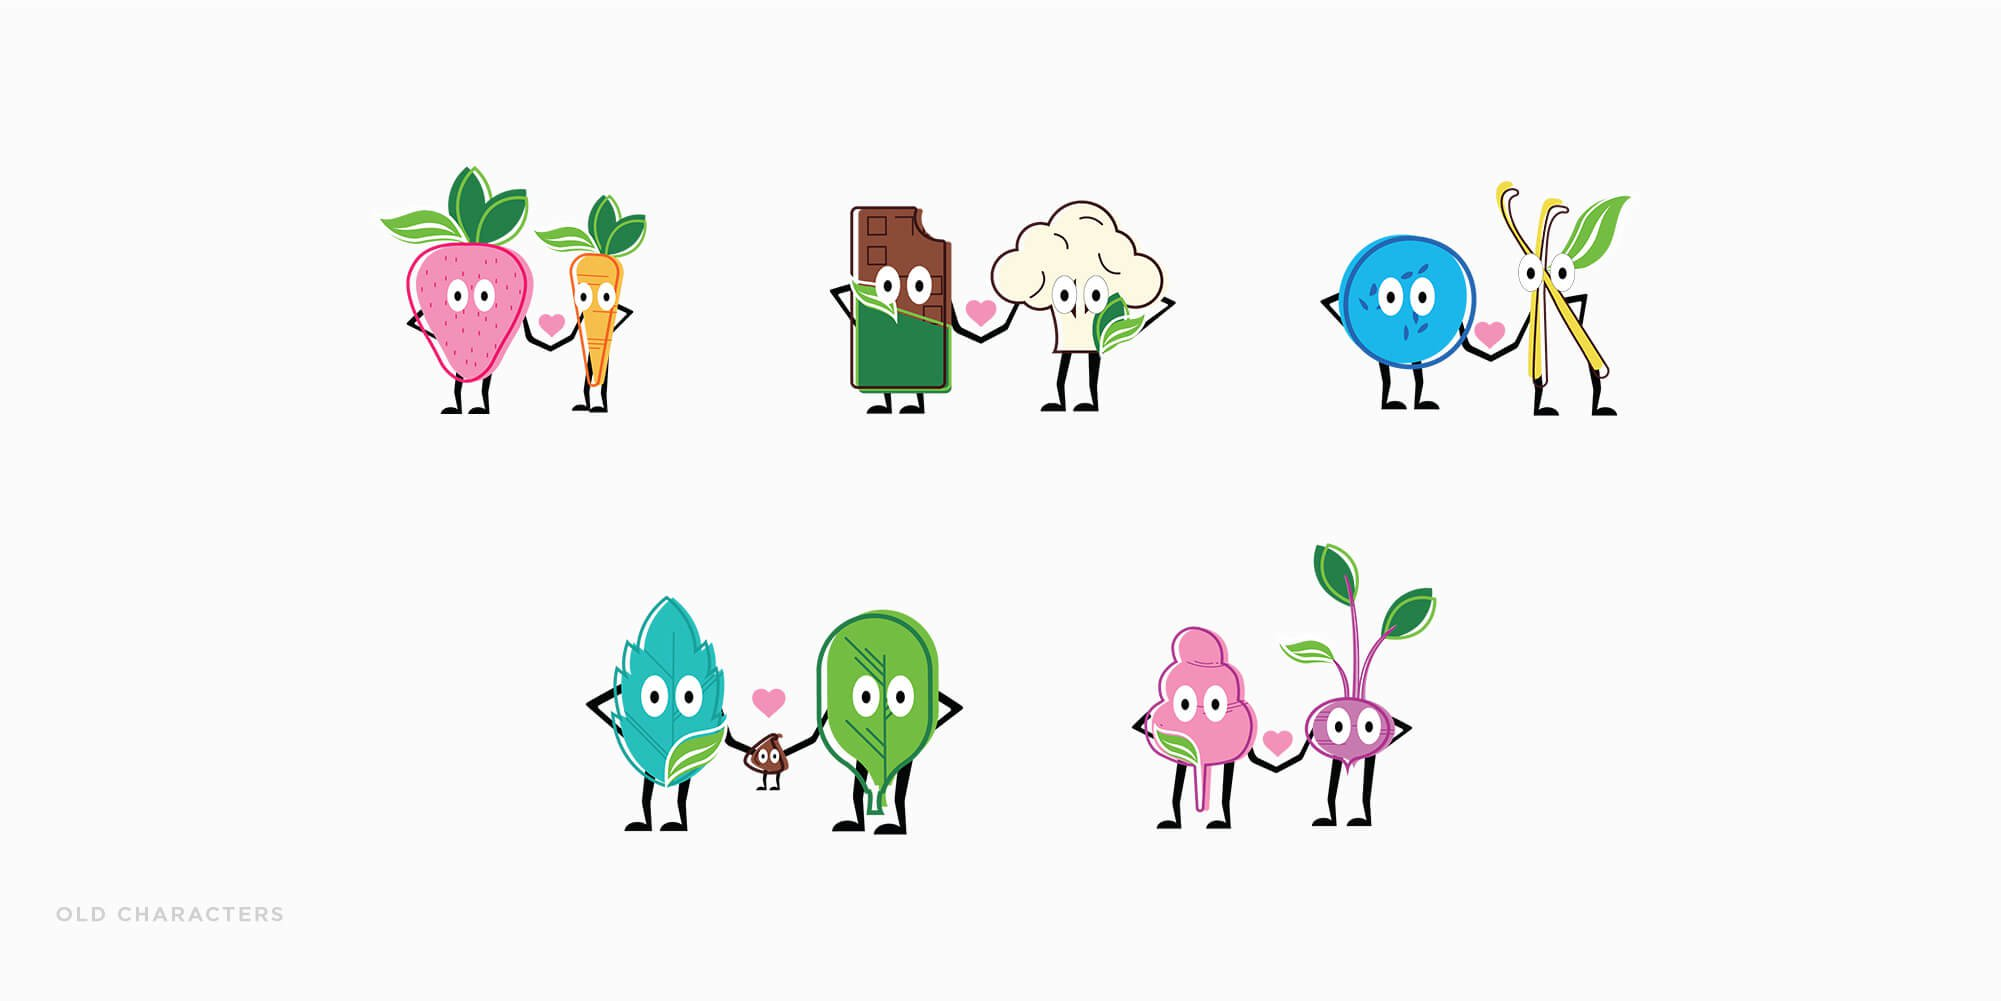 Jacober rebranding of Peekaboo Ice Cream. Photo of old line up of veggie characters illustration